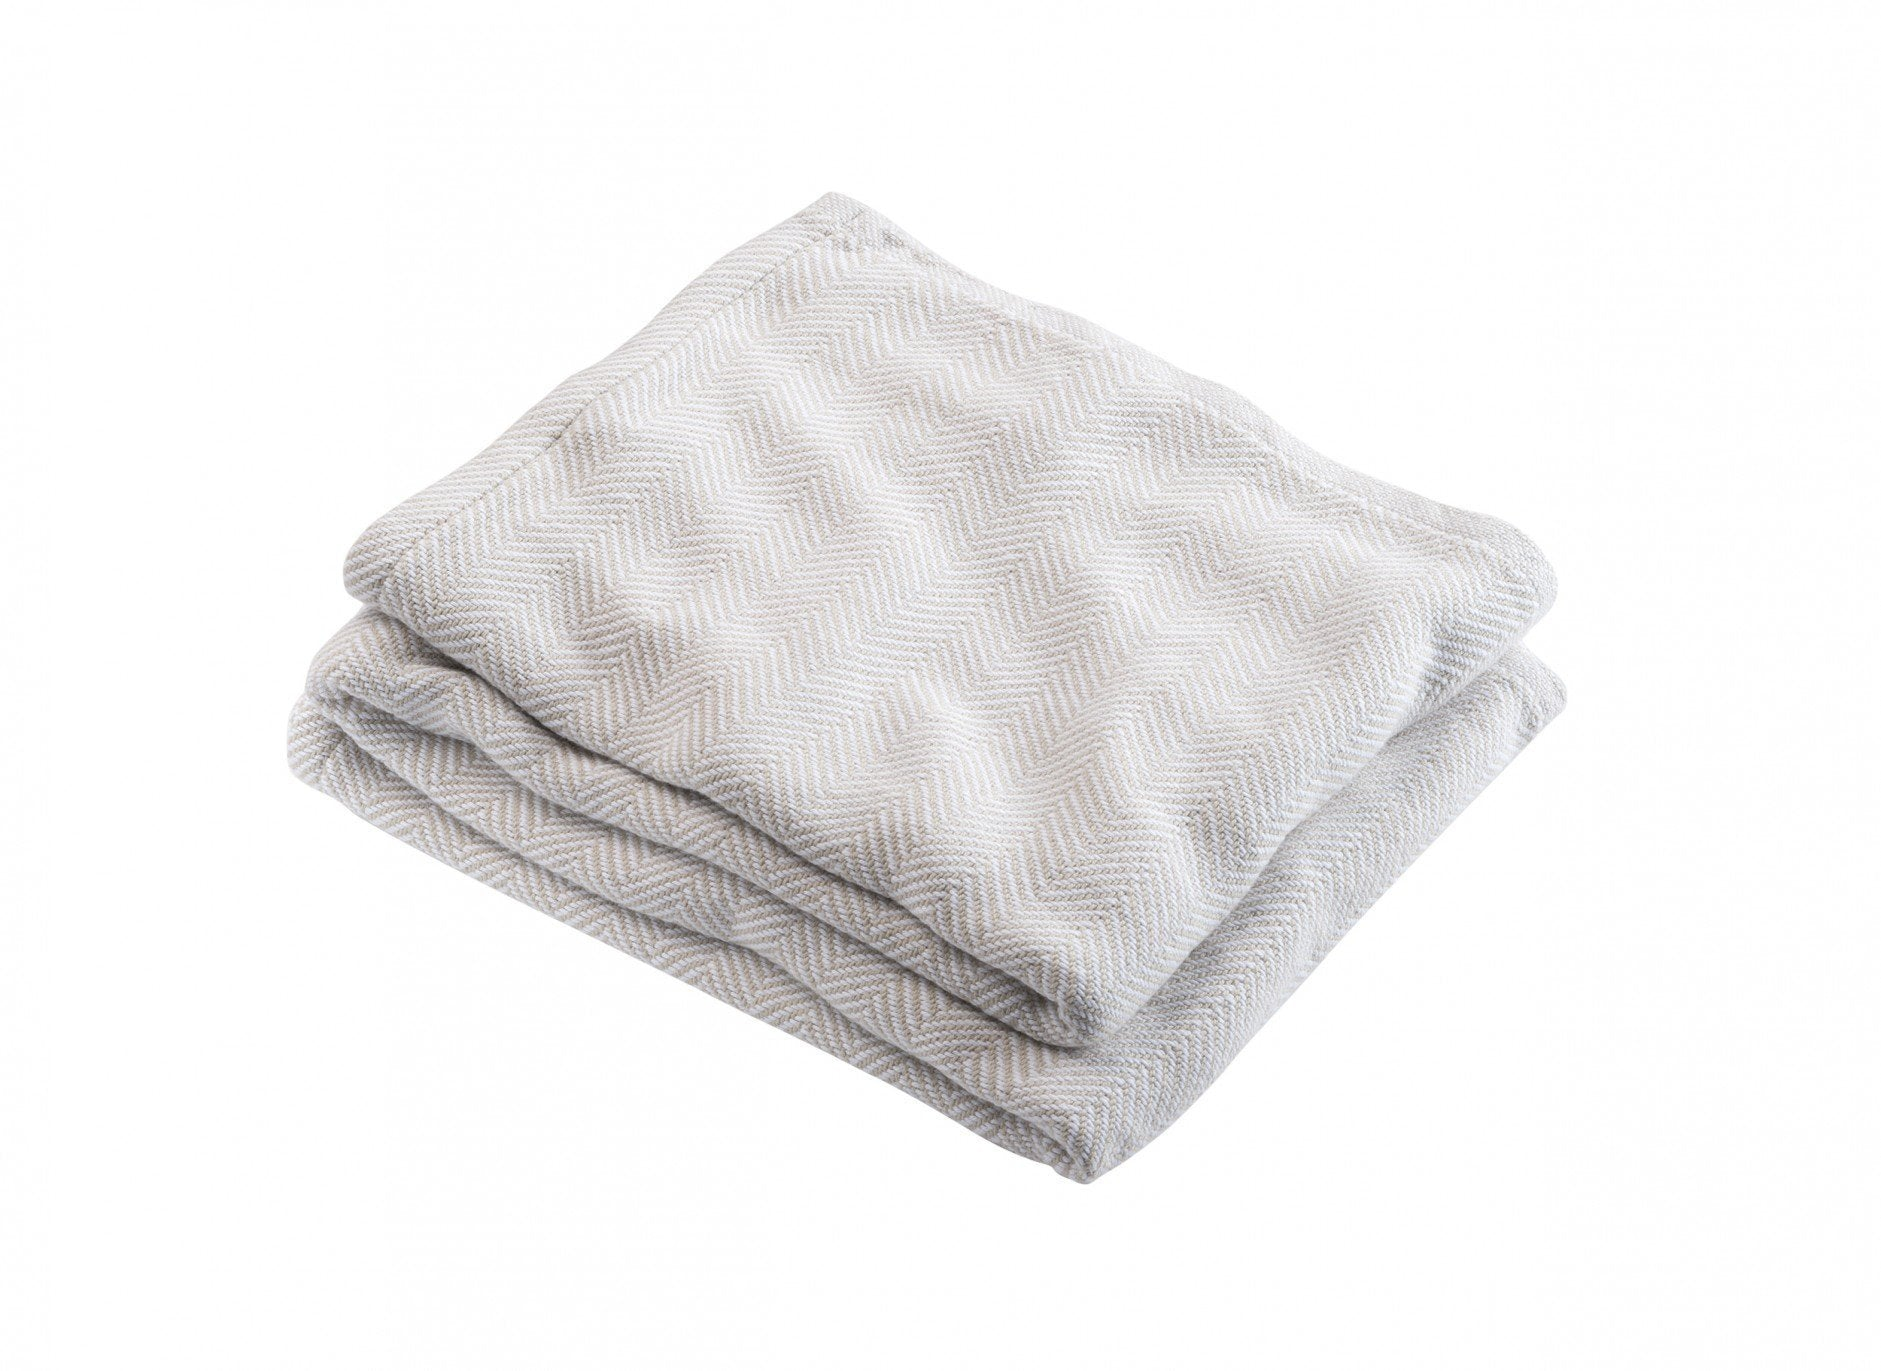 Oyster Penobscot Herringbone Cotton Blanket by Brahms Mount | Fig Linens